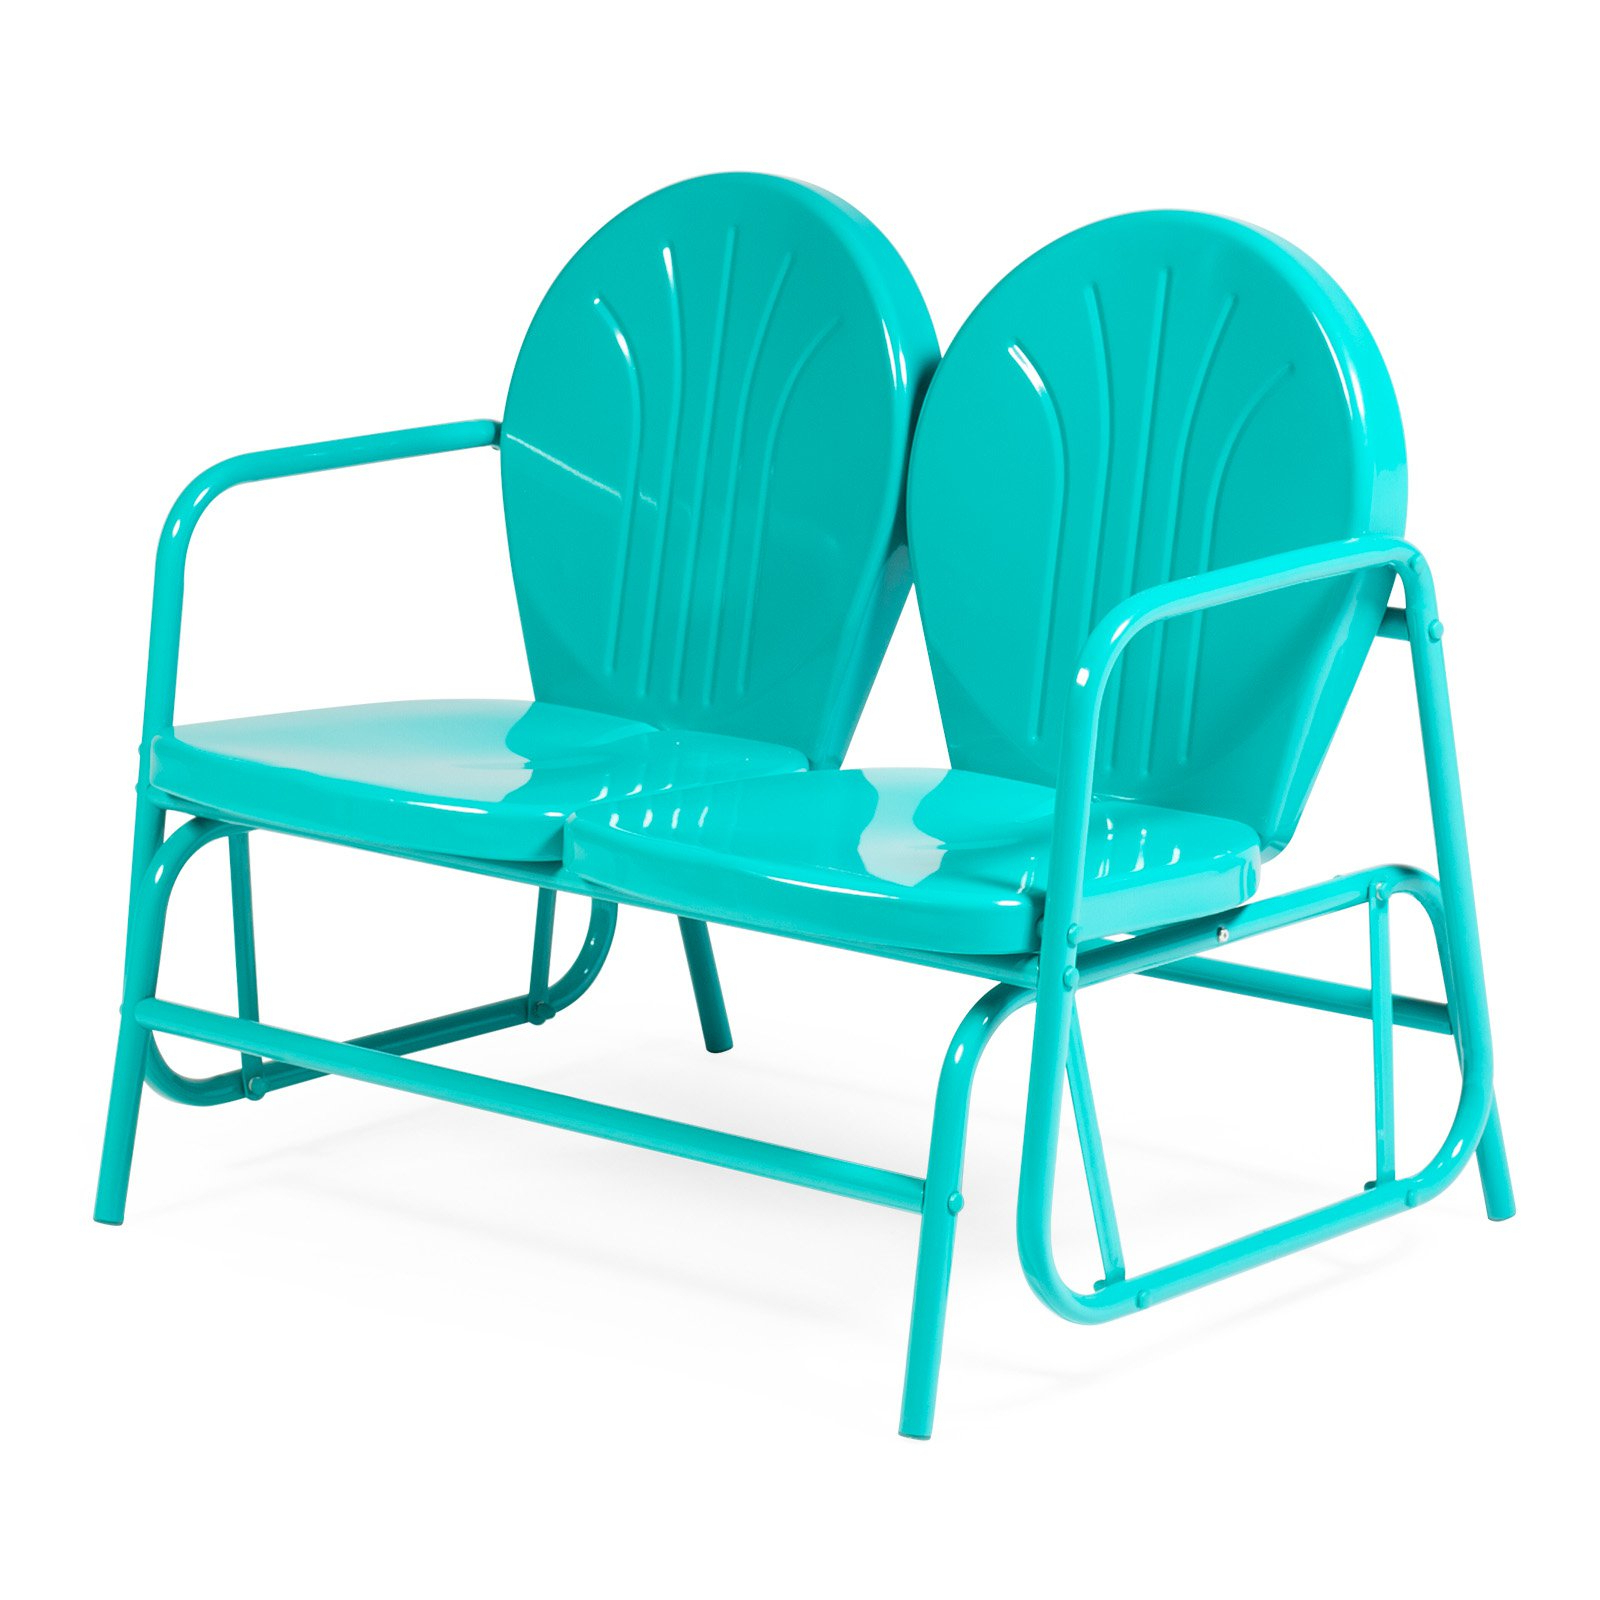 Newest Outdoor Retro Metal Double Glider Benches Pertaining To Coral Coast Vintage Retro Double Glider – Walmart (View 8 of 30)